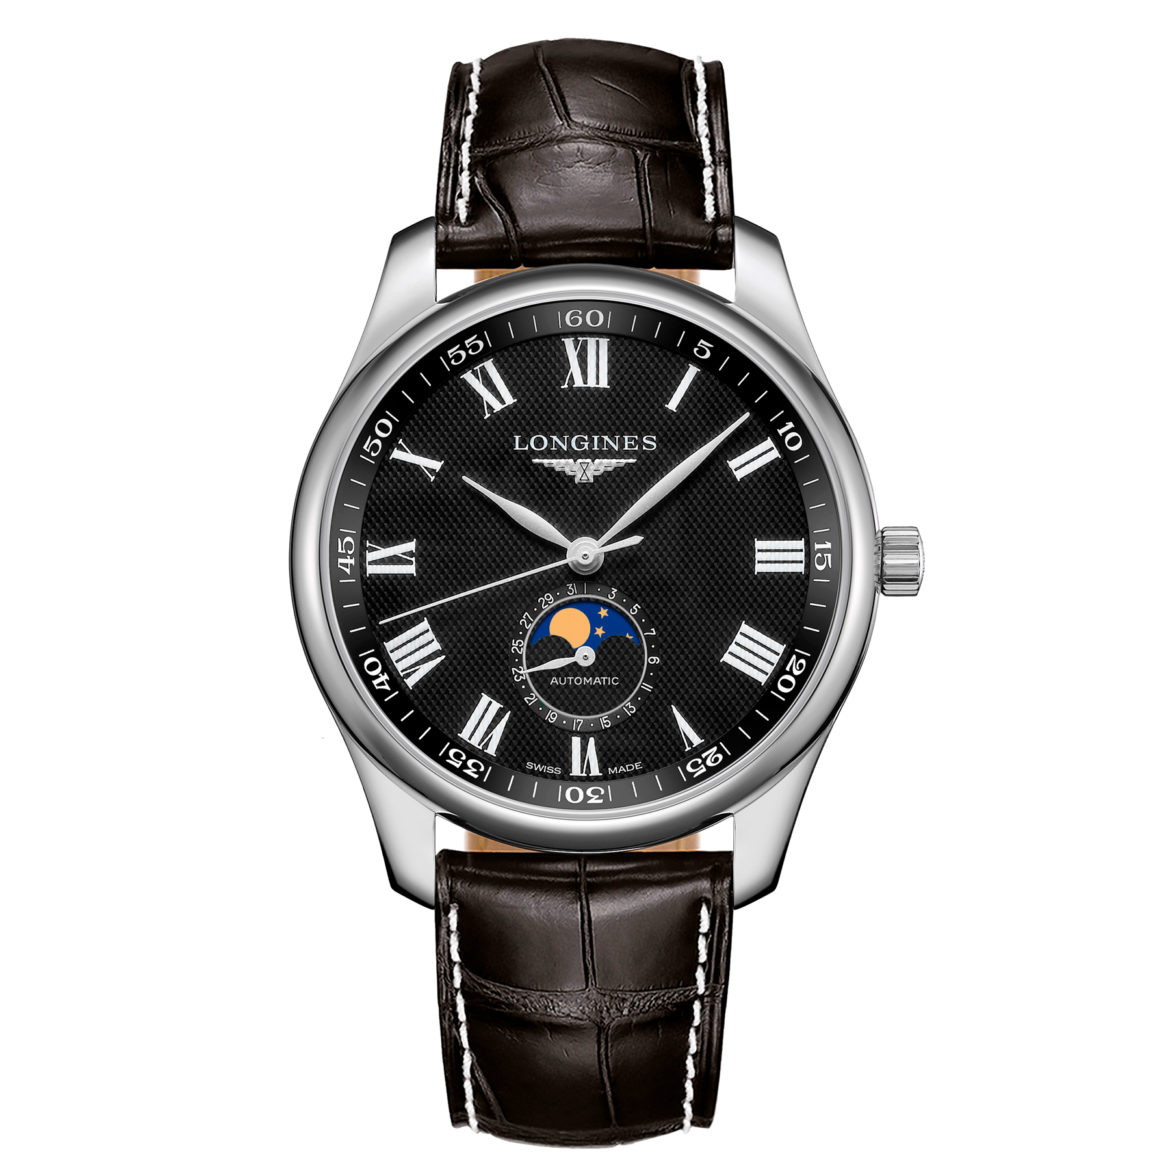 LONGINES</br/>The Longines Master Collection </br/>L29194517